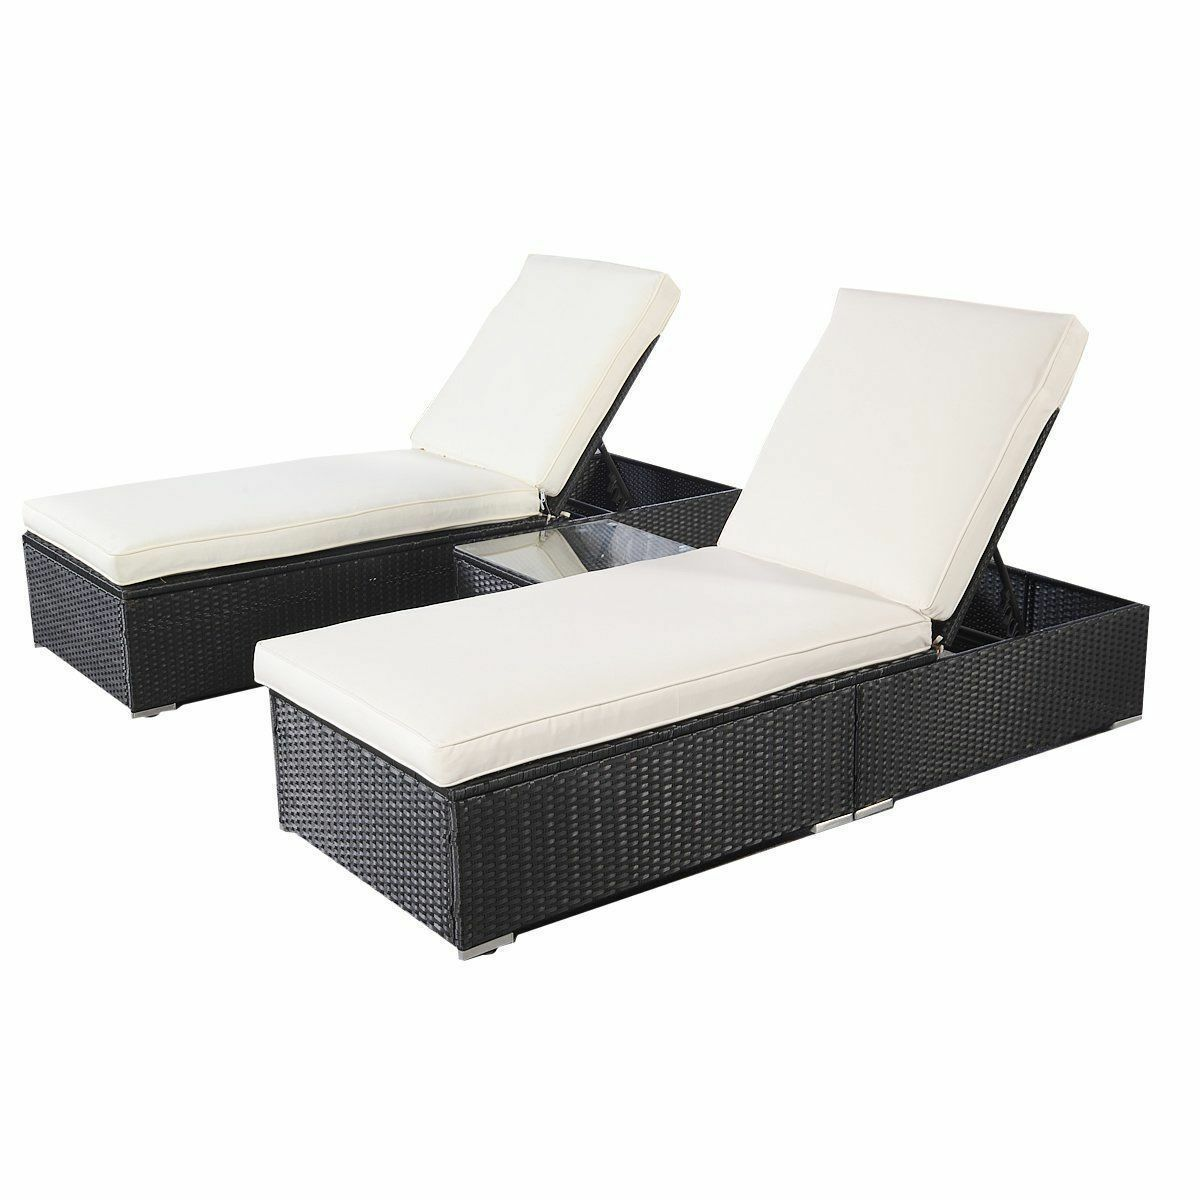 Outdoor Lounge Sofa Wicker Rattan Lounge Sofa Chaise Chair Bed Set Patio